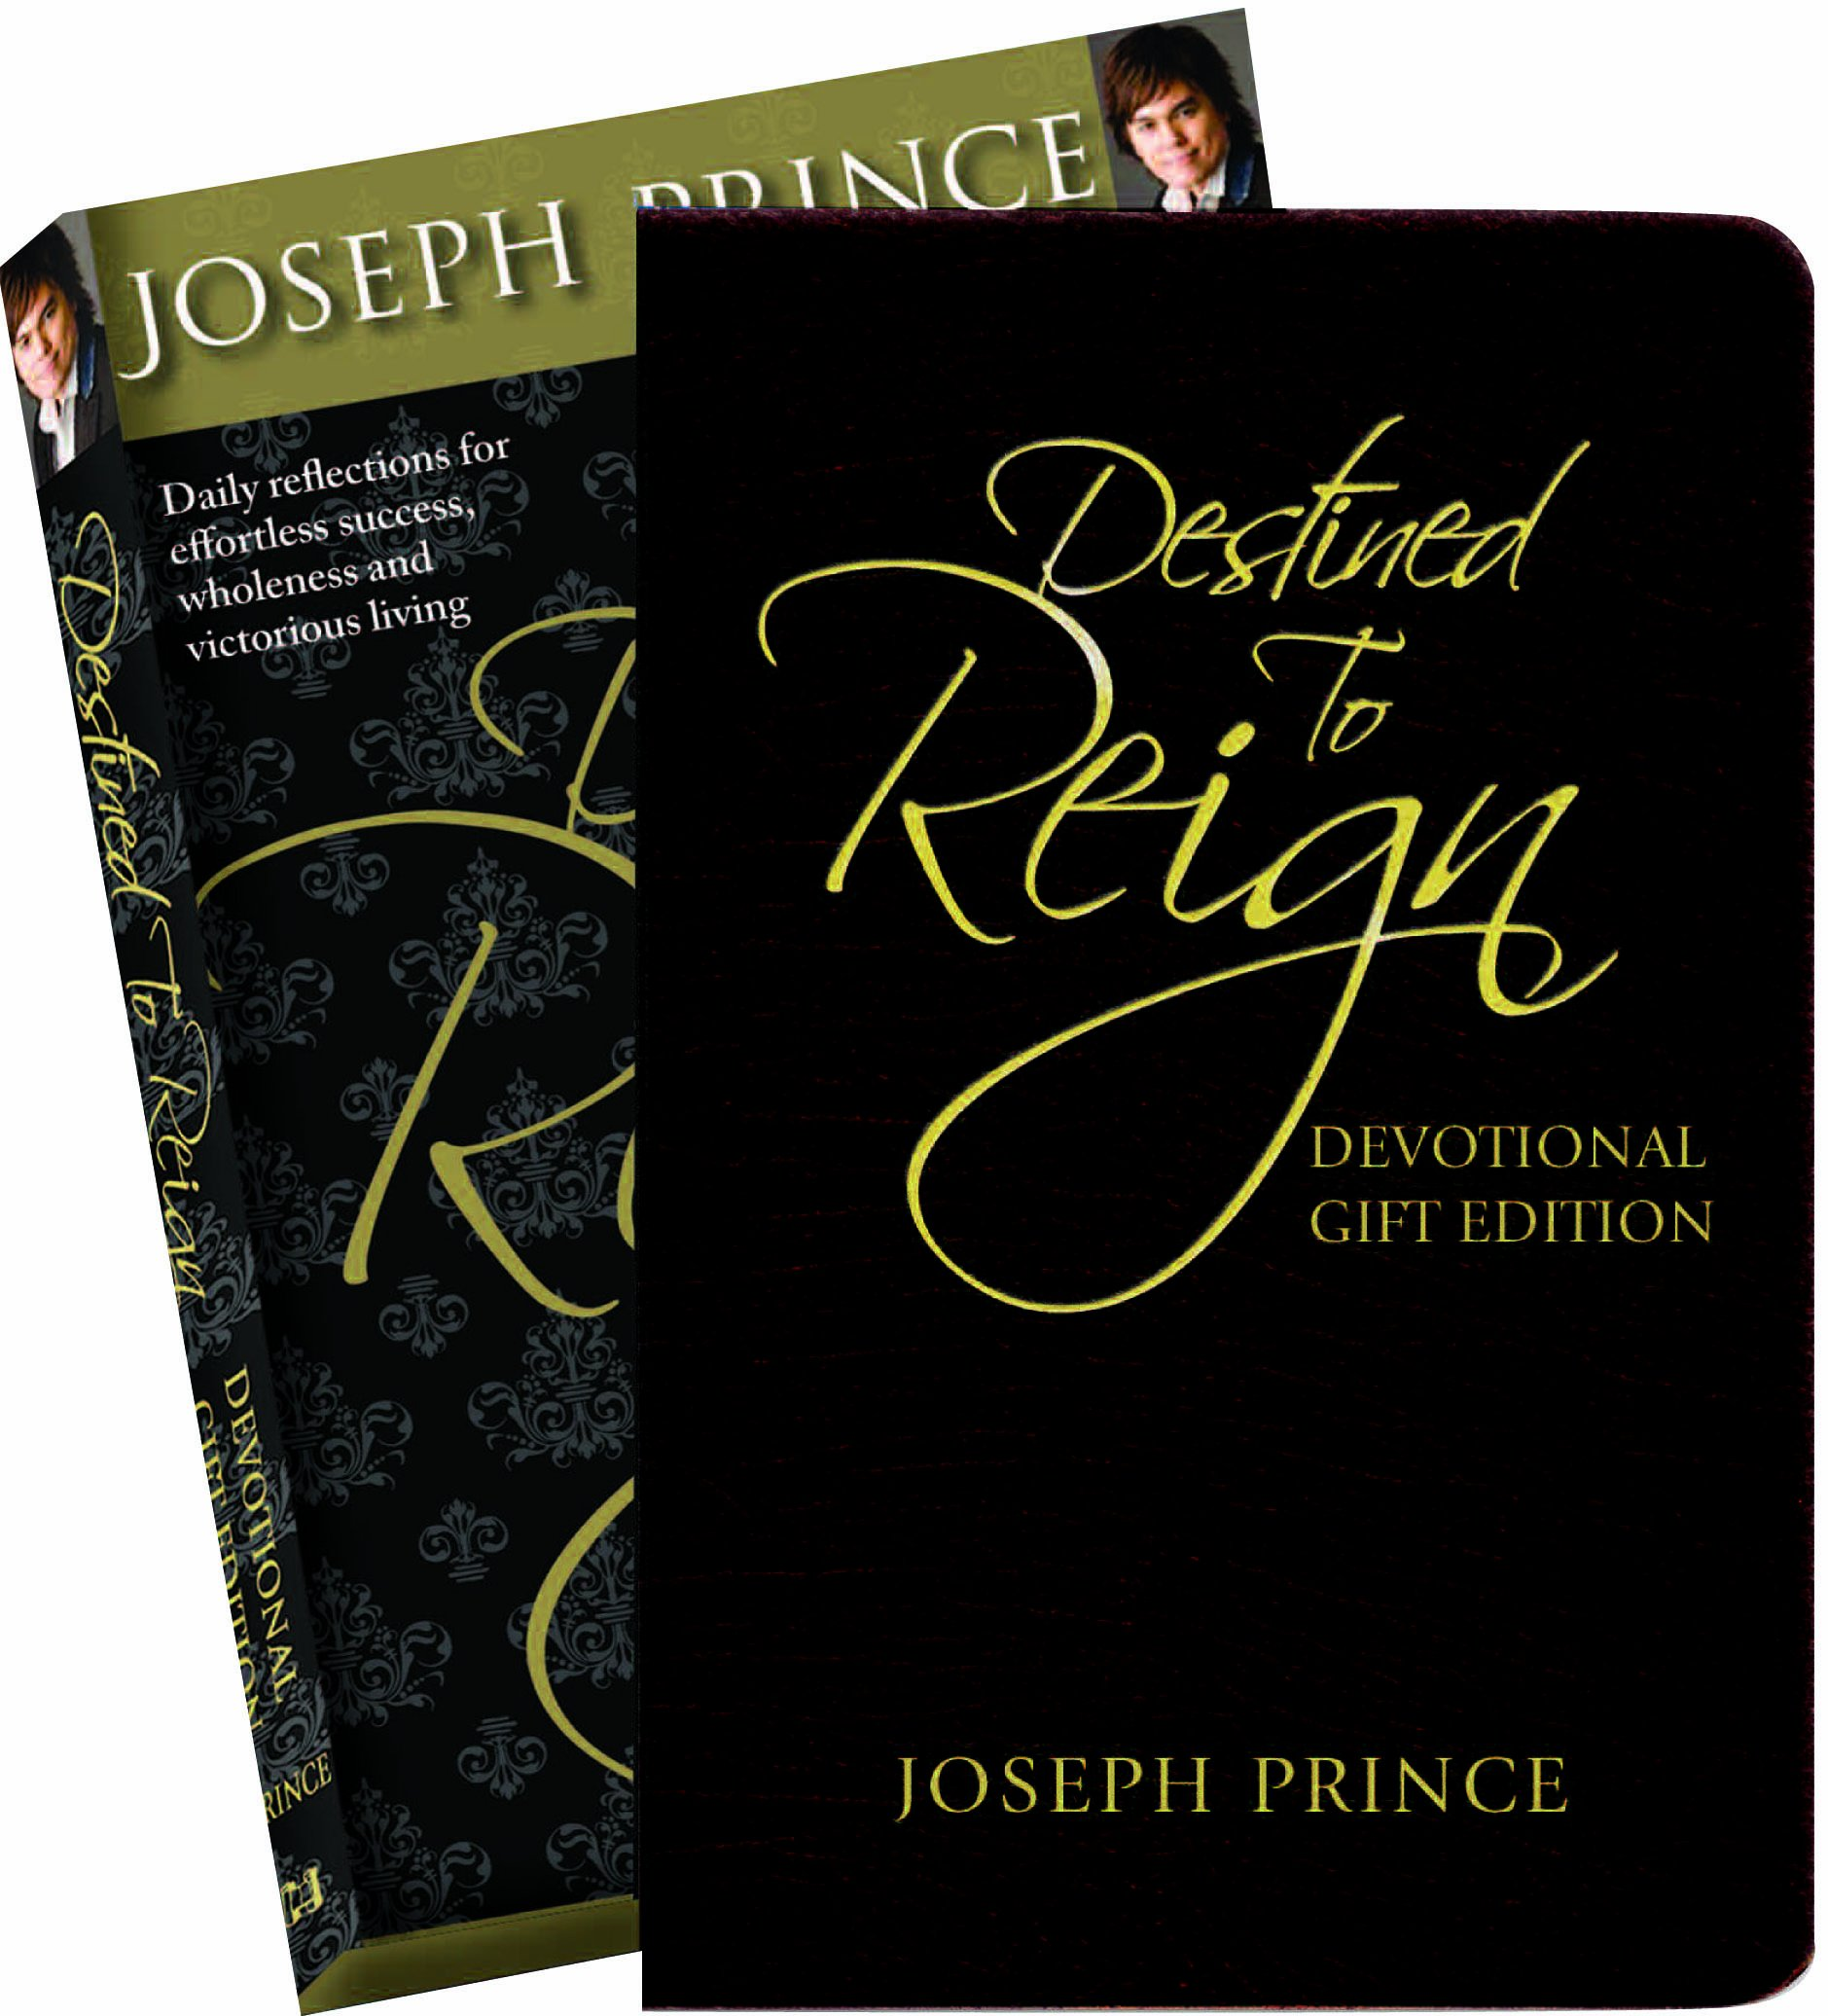 Destined to reign devotional gift edition daily reflections for destined to reign devotional gift edition daily reflections for effortless success wholeness and victorious living livros na amazon brasil fandeluxe Images